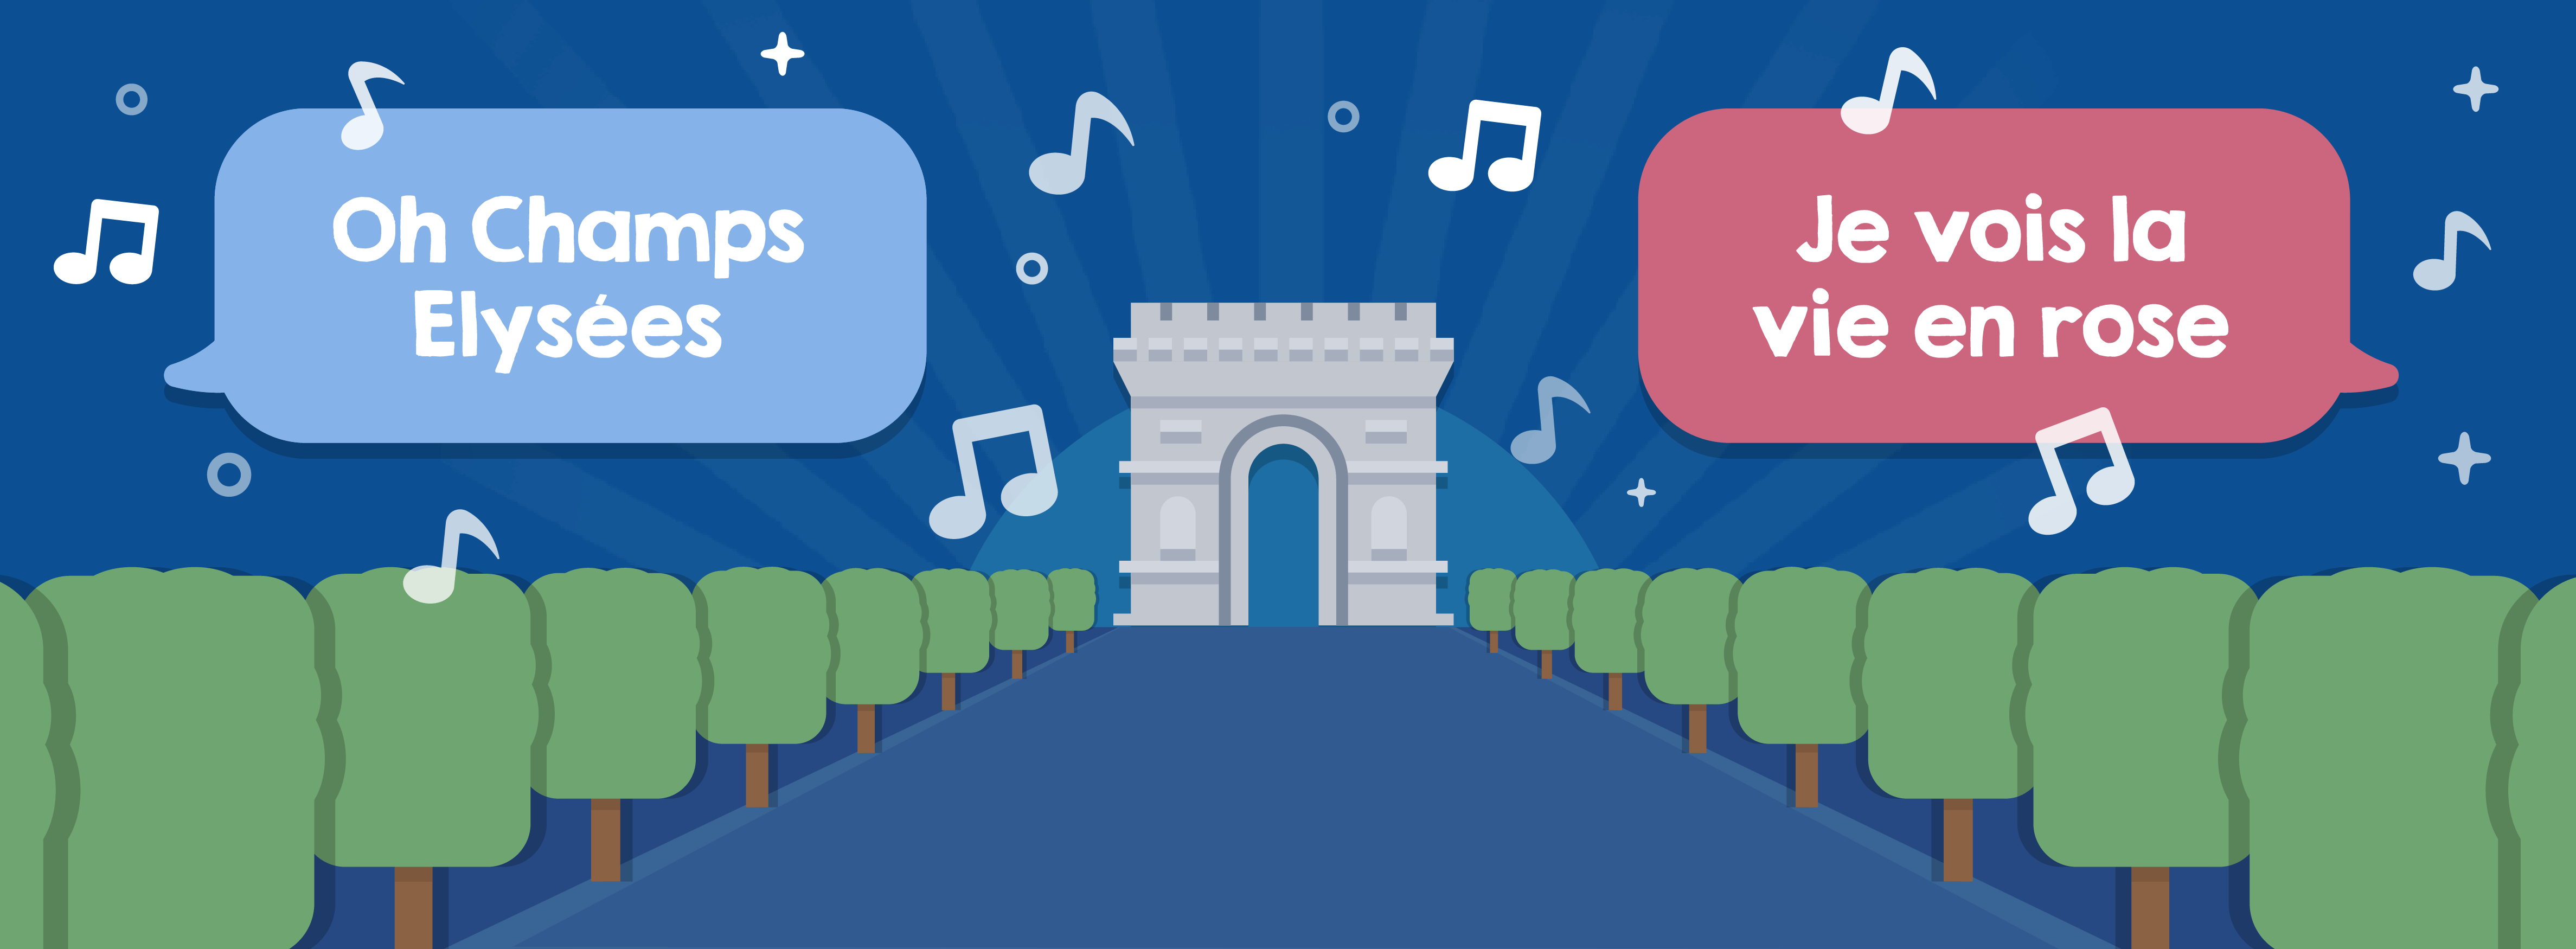 Popular French songs include 'Oh Champs Elysées' and 'La vie en rose'